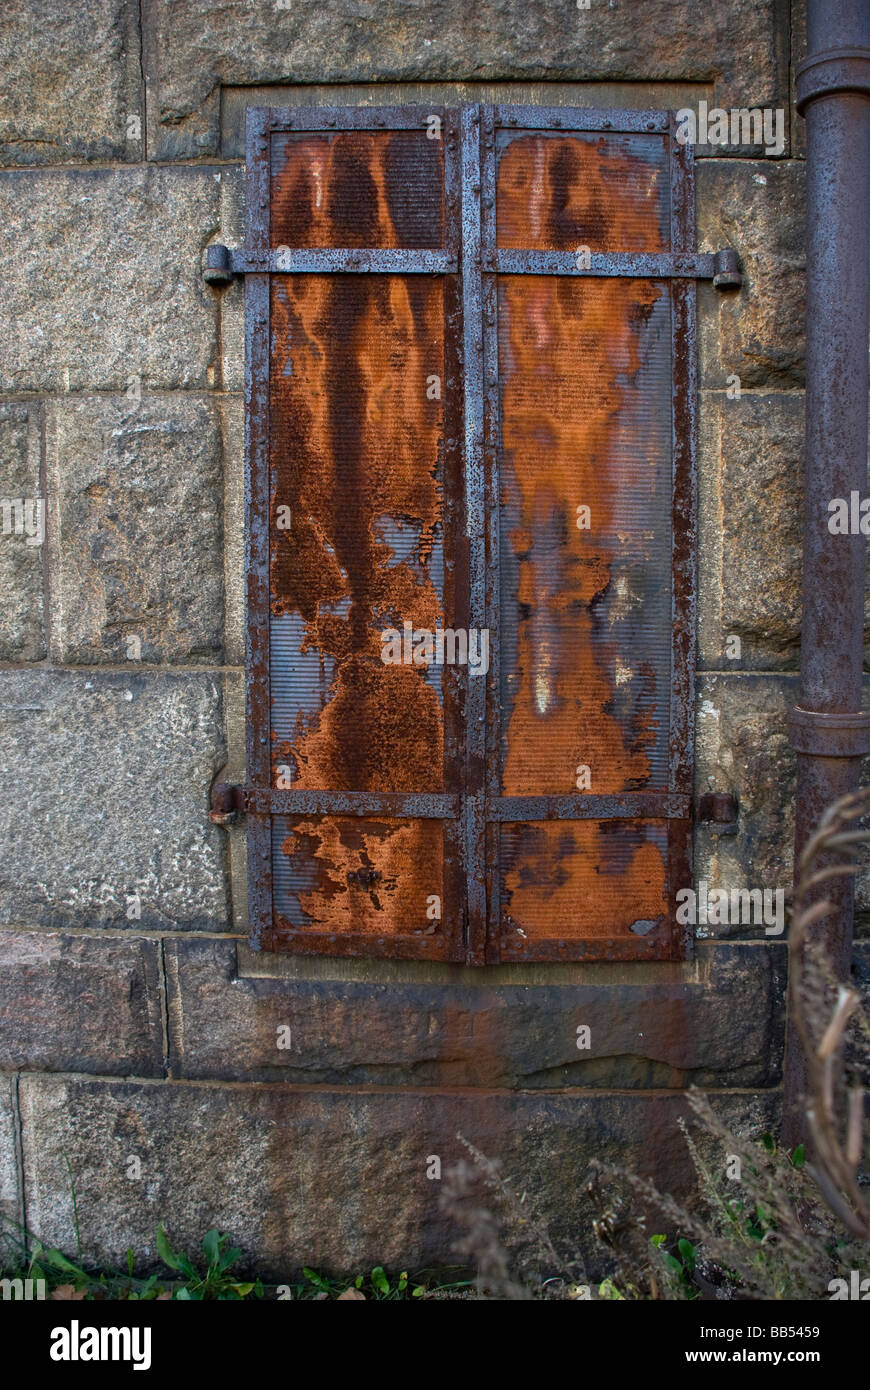 rust rusty iron shutters stone wall antique old ruin